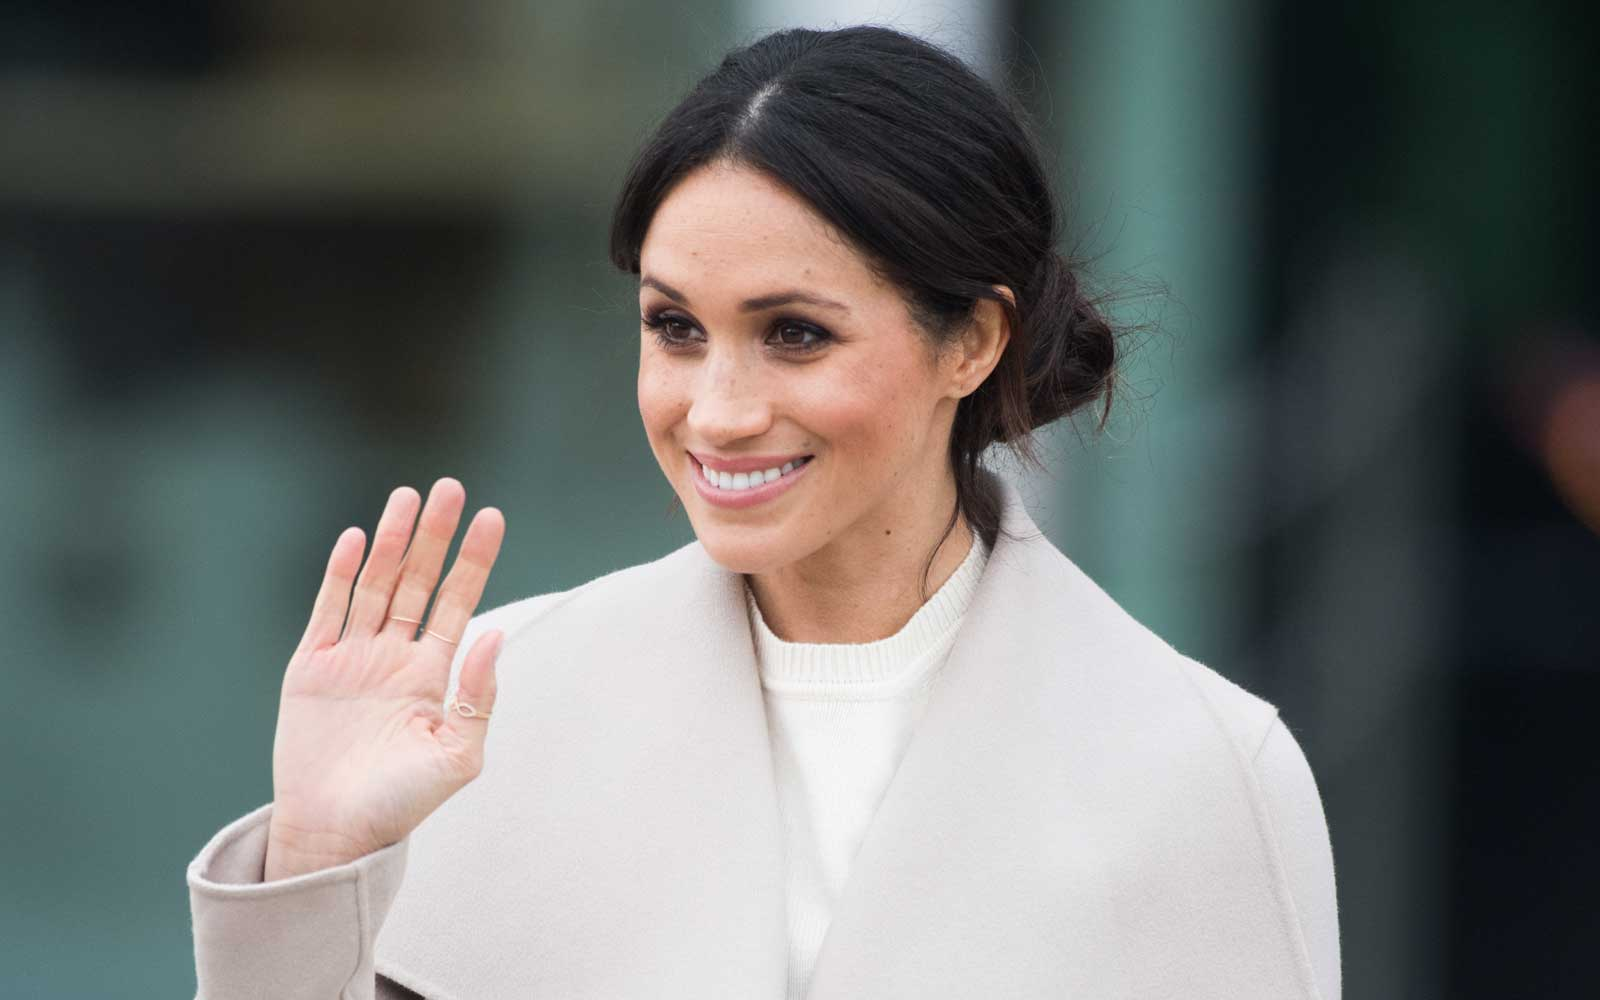 You Can Now Take Royal Classes to Become More Like Meghan Markle